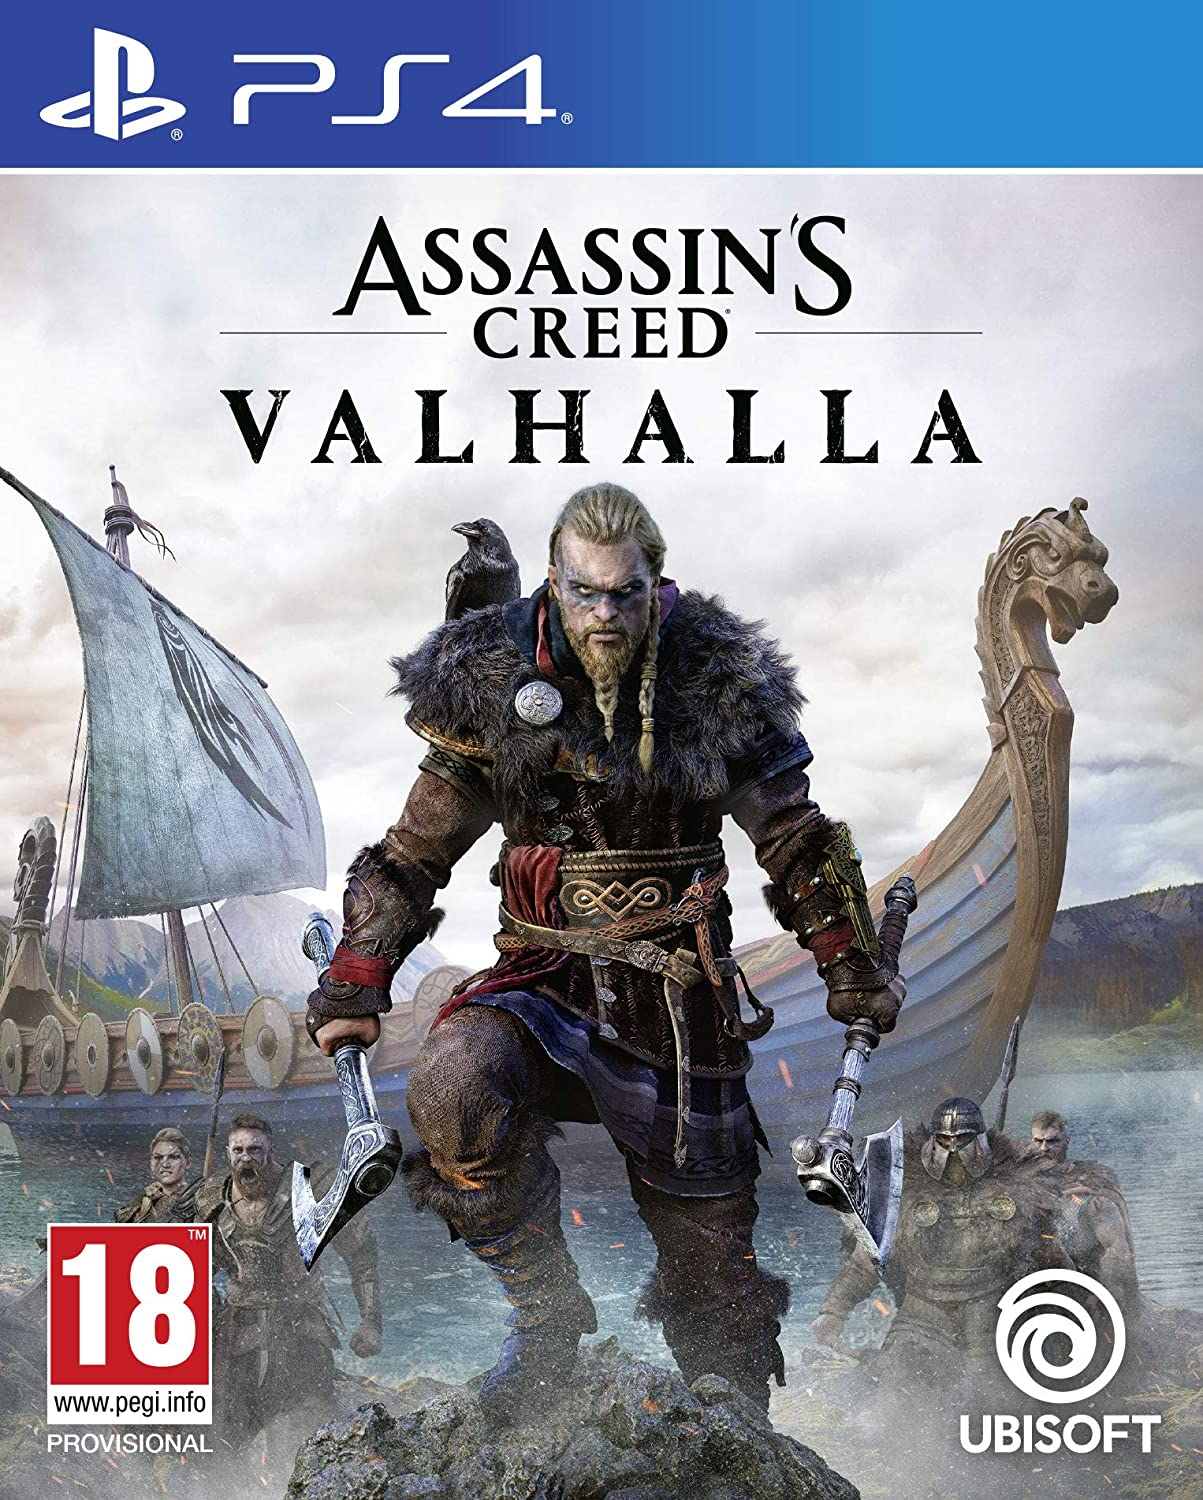 #Videojuego Assassin's Creed Valhalla por 59,90€